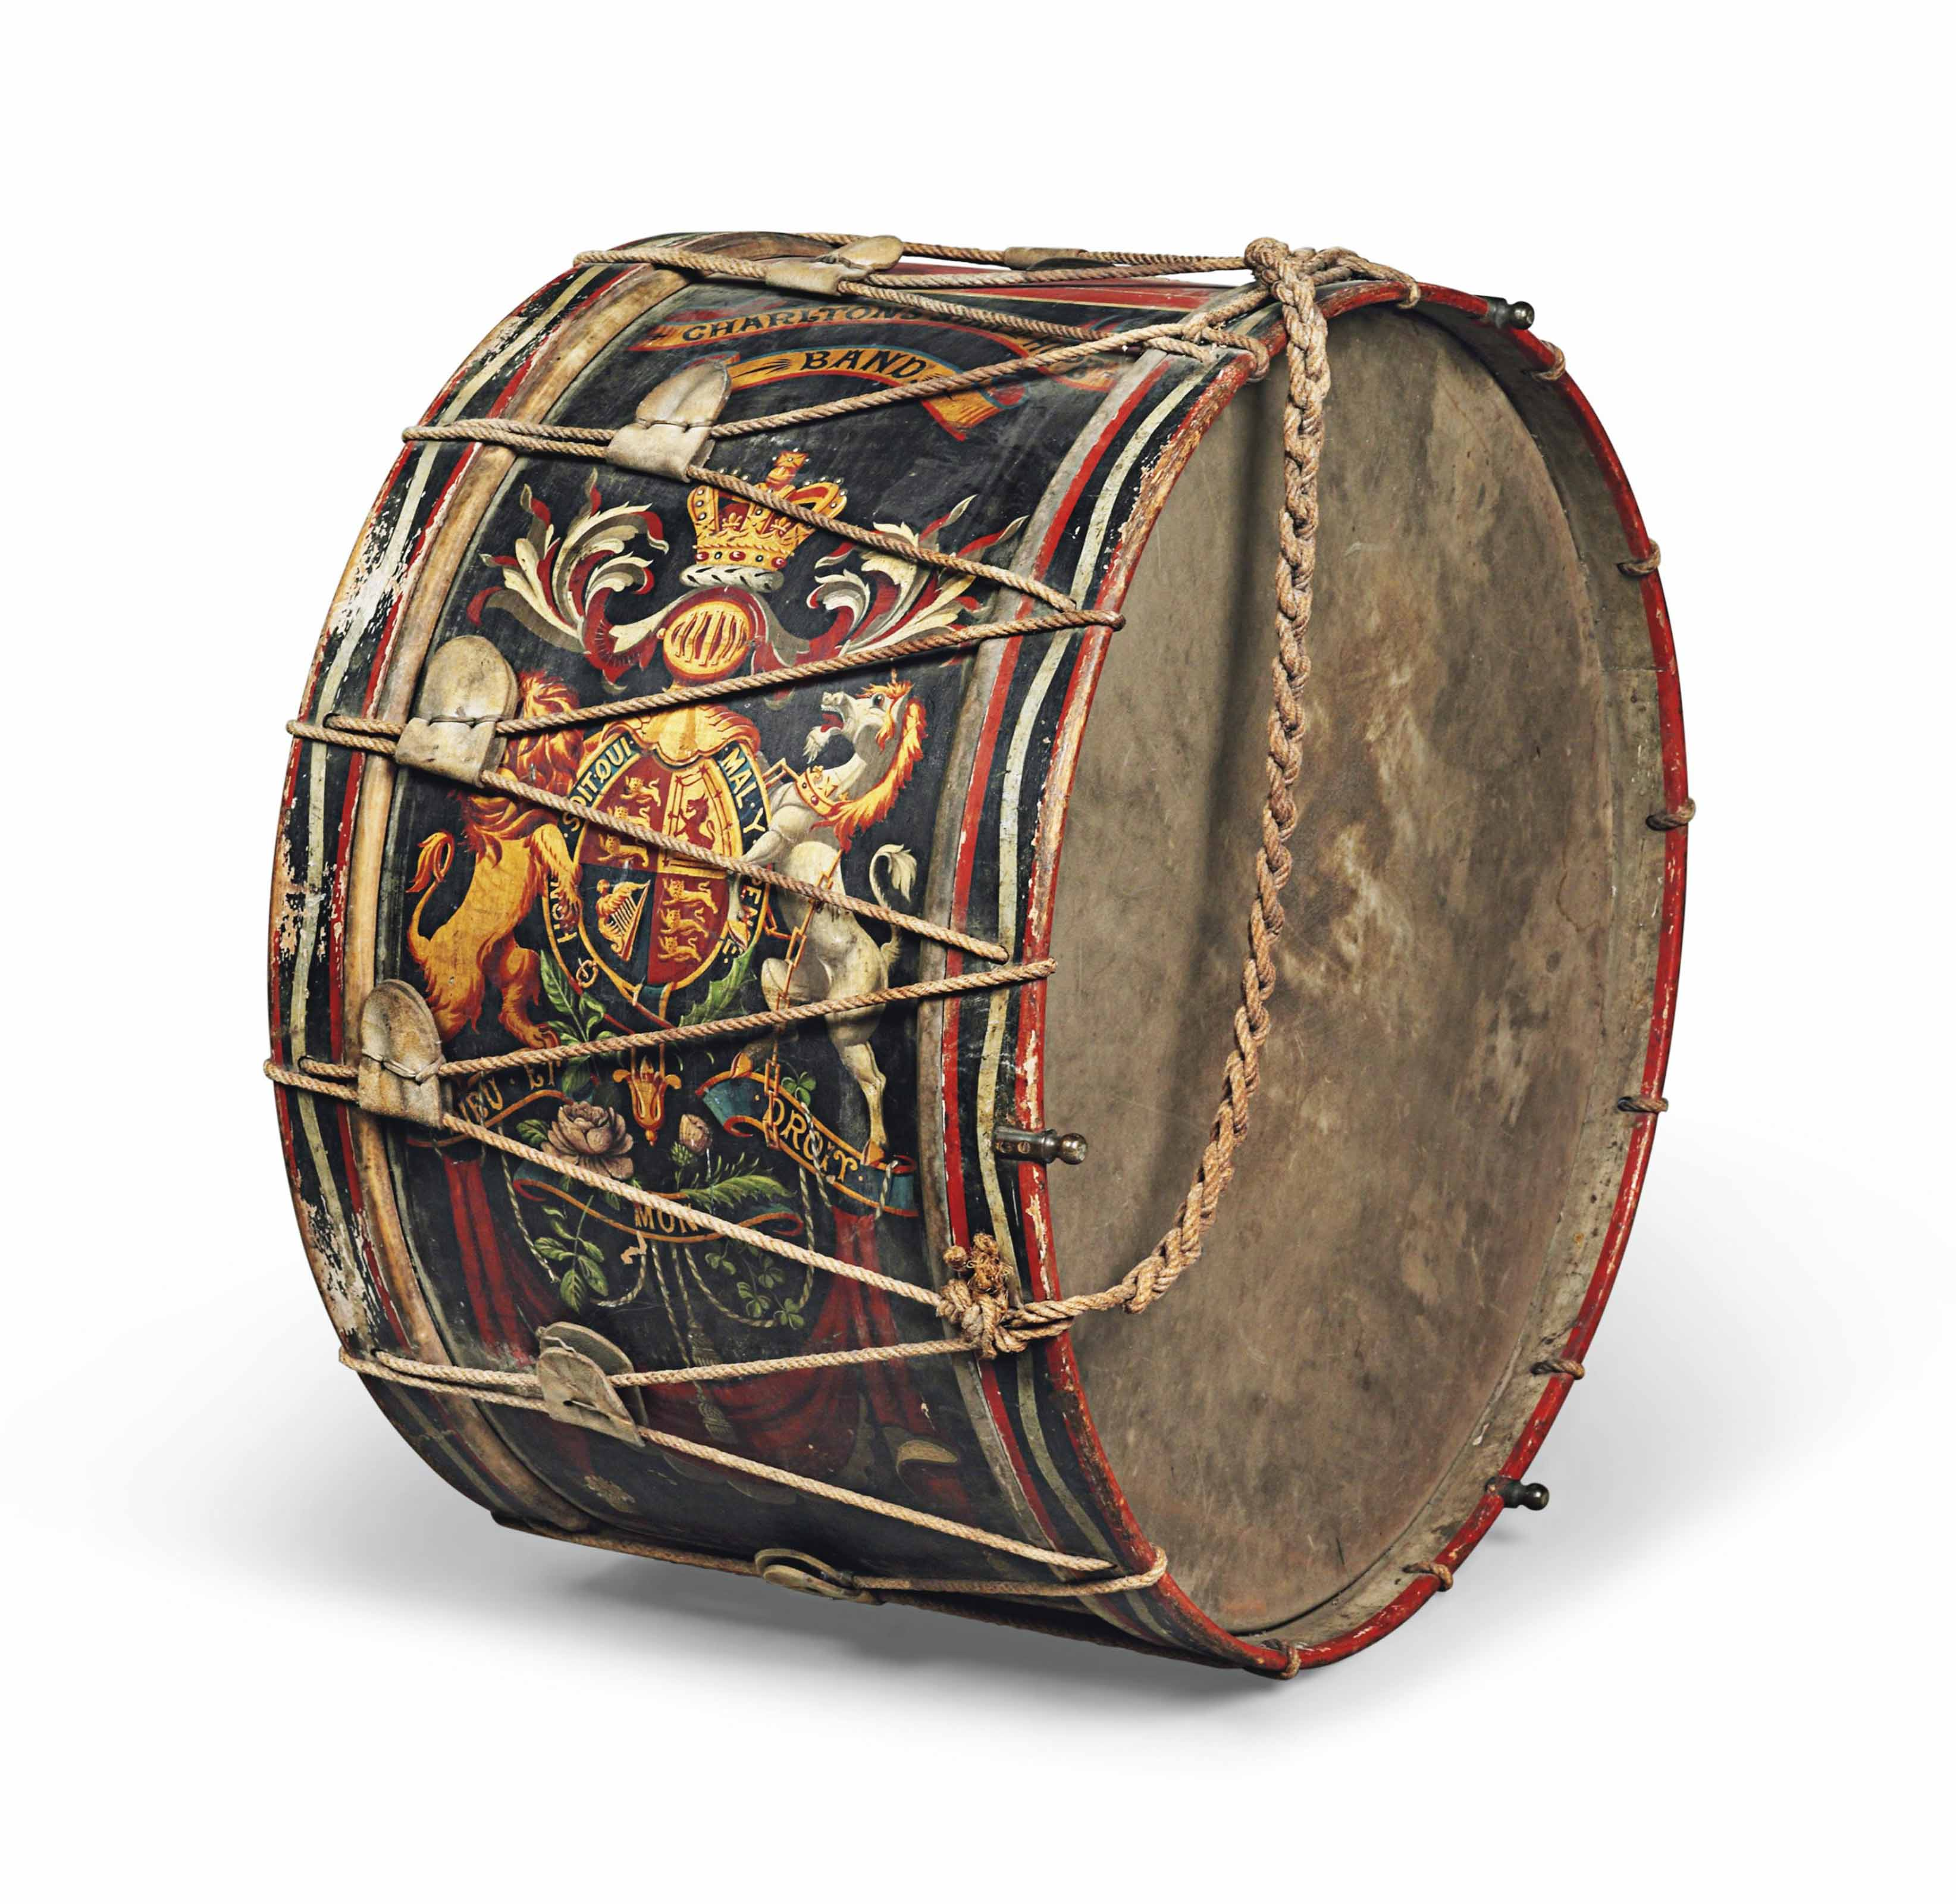 A PARADE DRUM FOR THE CHARLTON